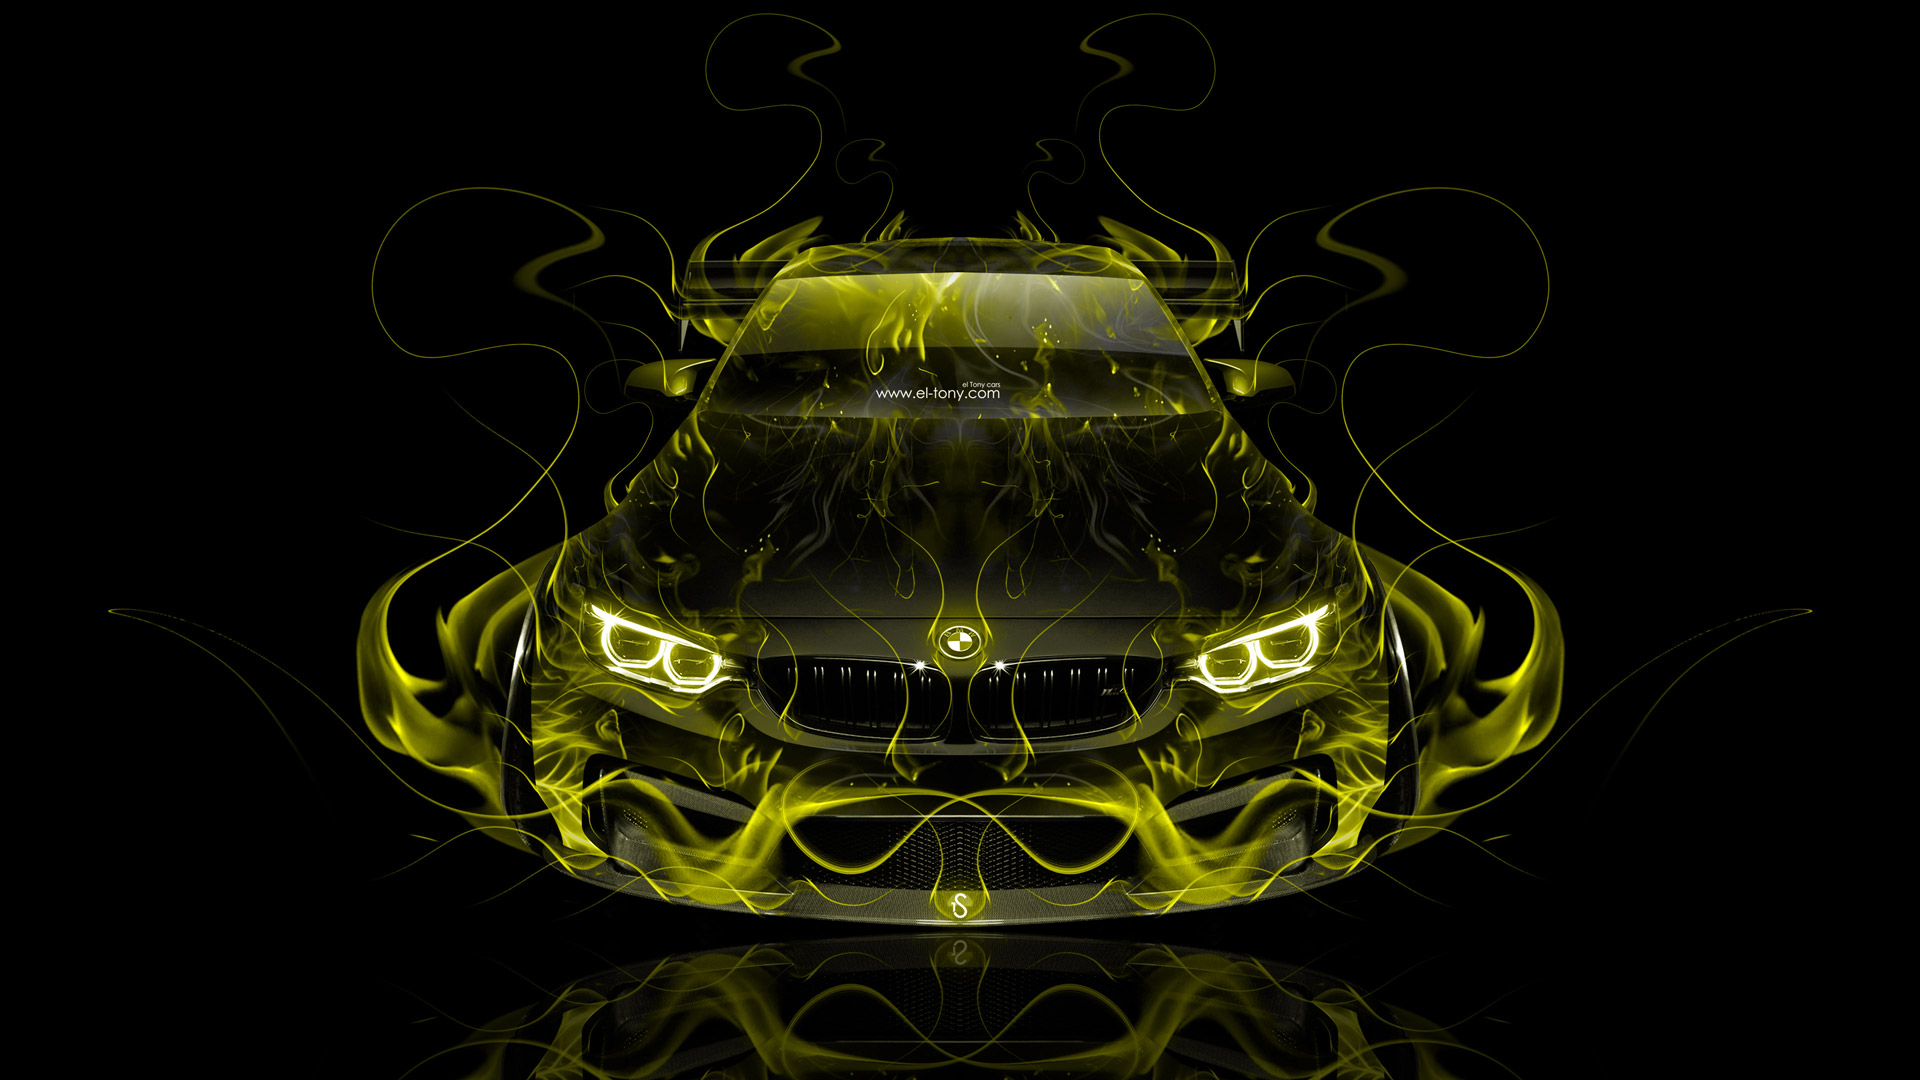 BMW-M-Tuning-FrontUp-Super-Fire-Flame-Abstract-Car-Yellow-Black-Colors-HD-design-by-wallpaper-wp3603616